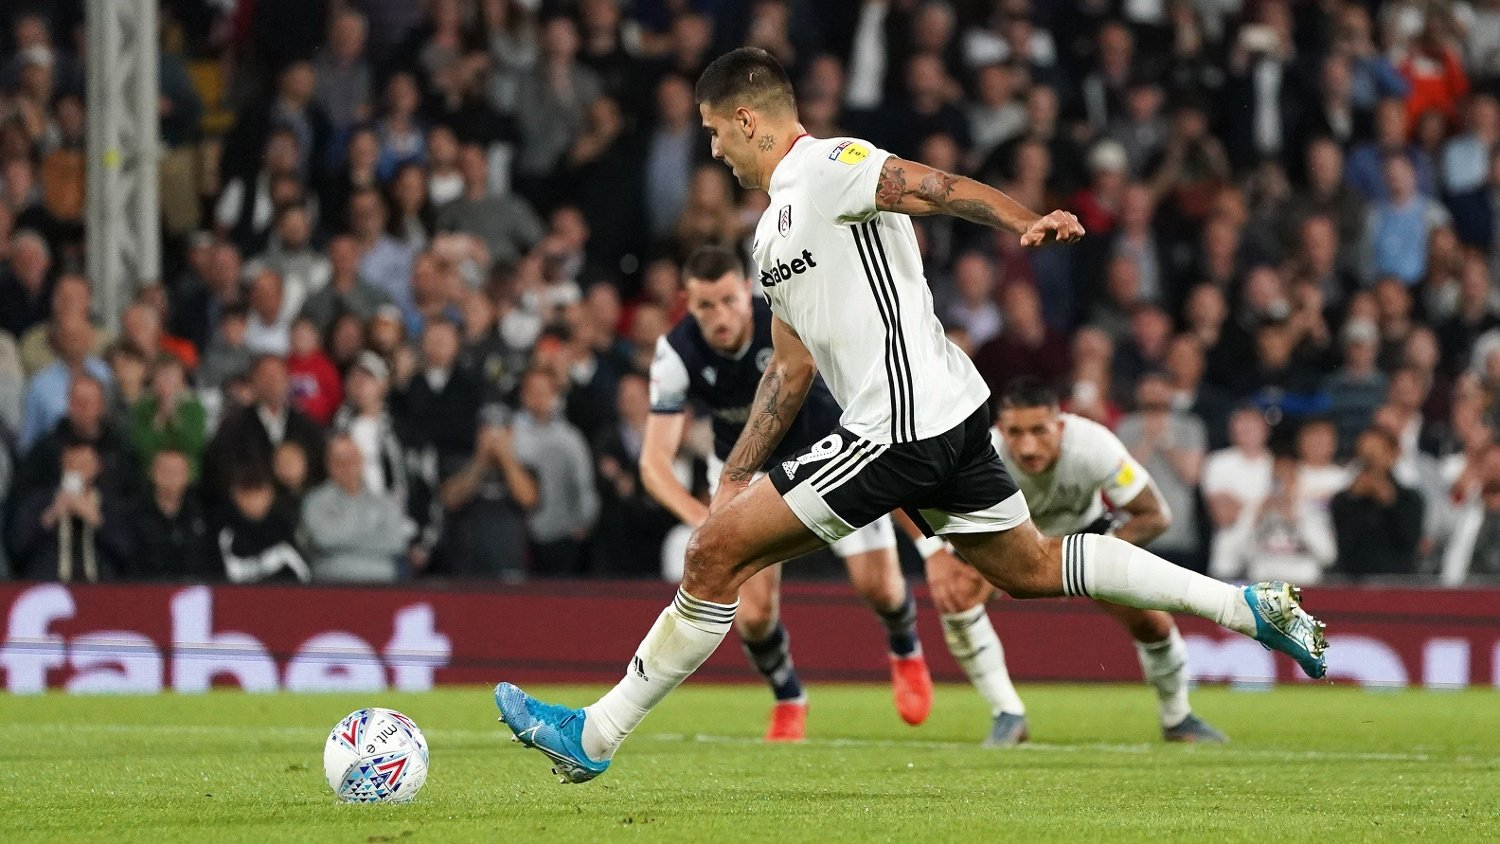 Fulham's Aleksandar Mitrovic scores a penalty for his side's third goal